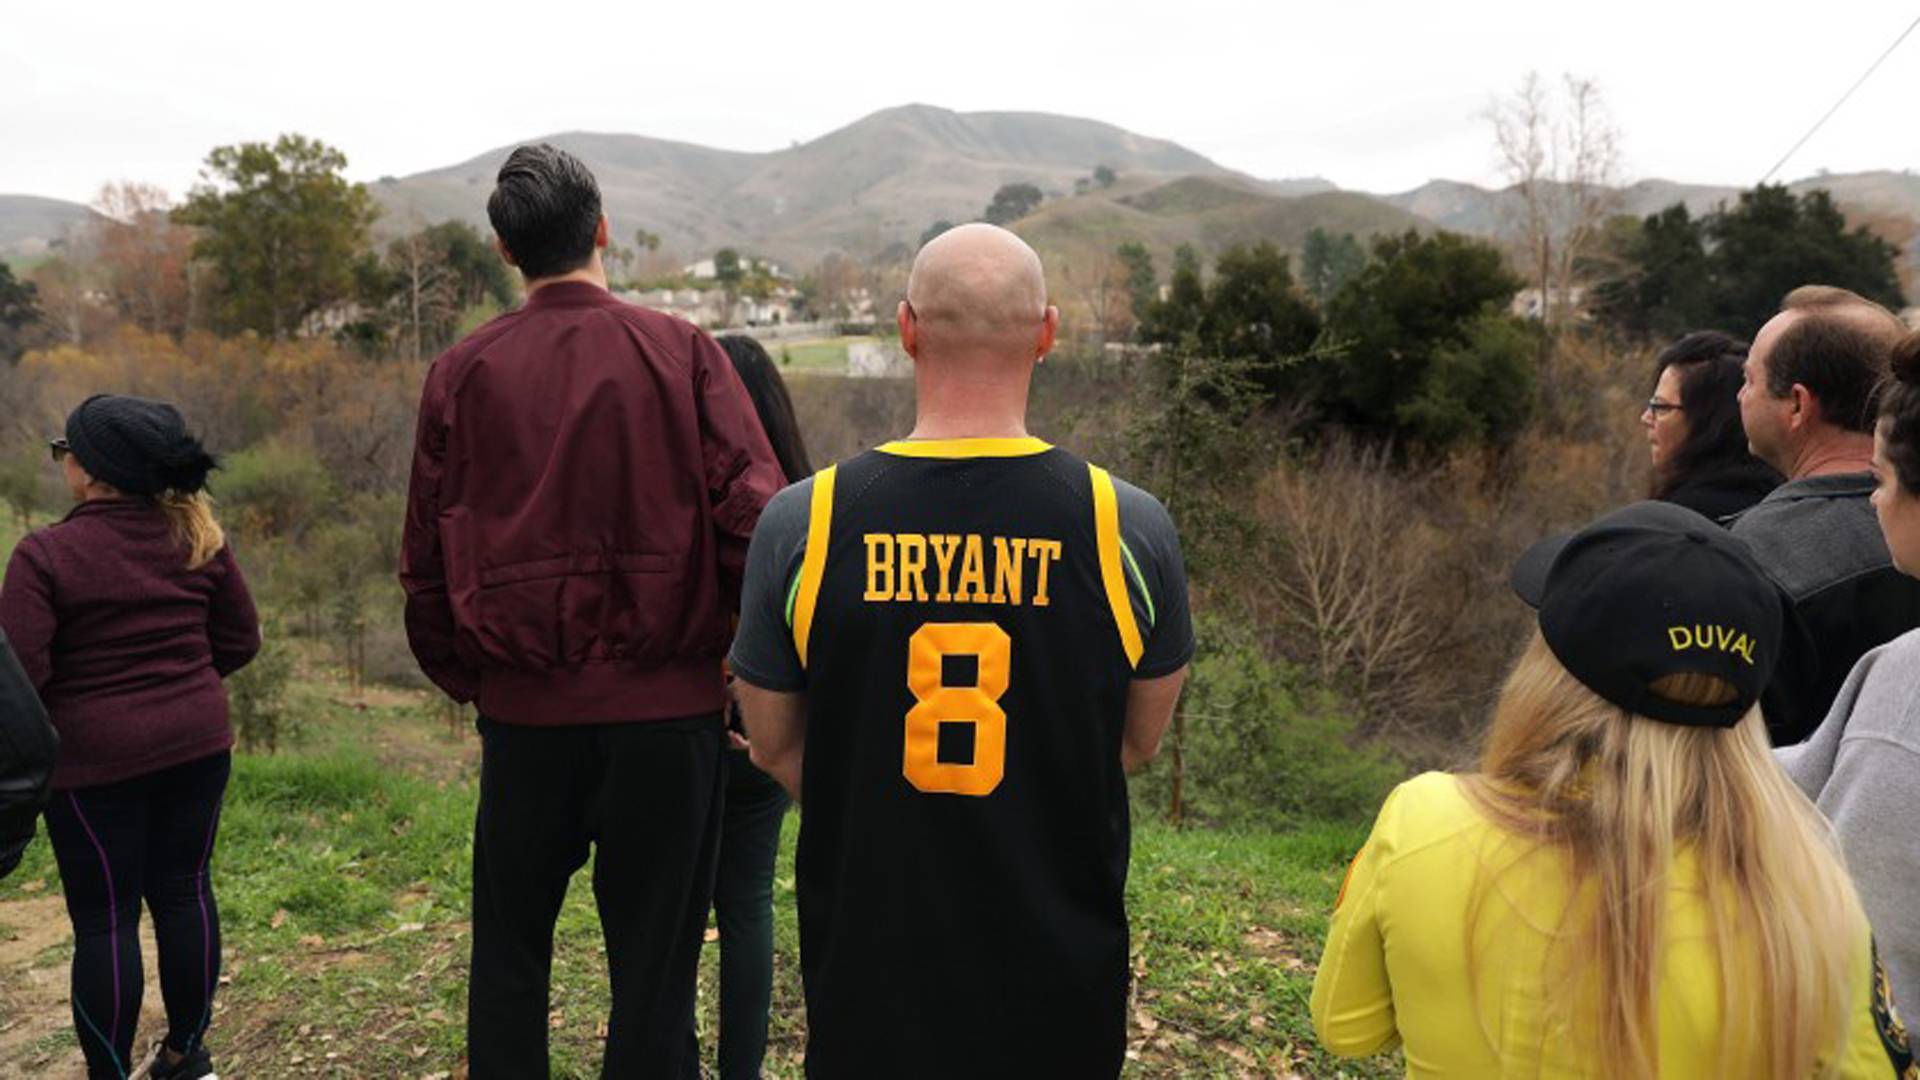 Fans gather in Calabasas on Jan. 26, 2020, the day Kobe Bryant and eight others died in a helicopter crash on a nearby hillside. (Credit: Christina House / Los Angeles Times)